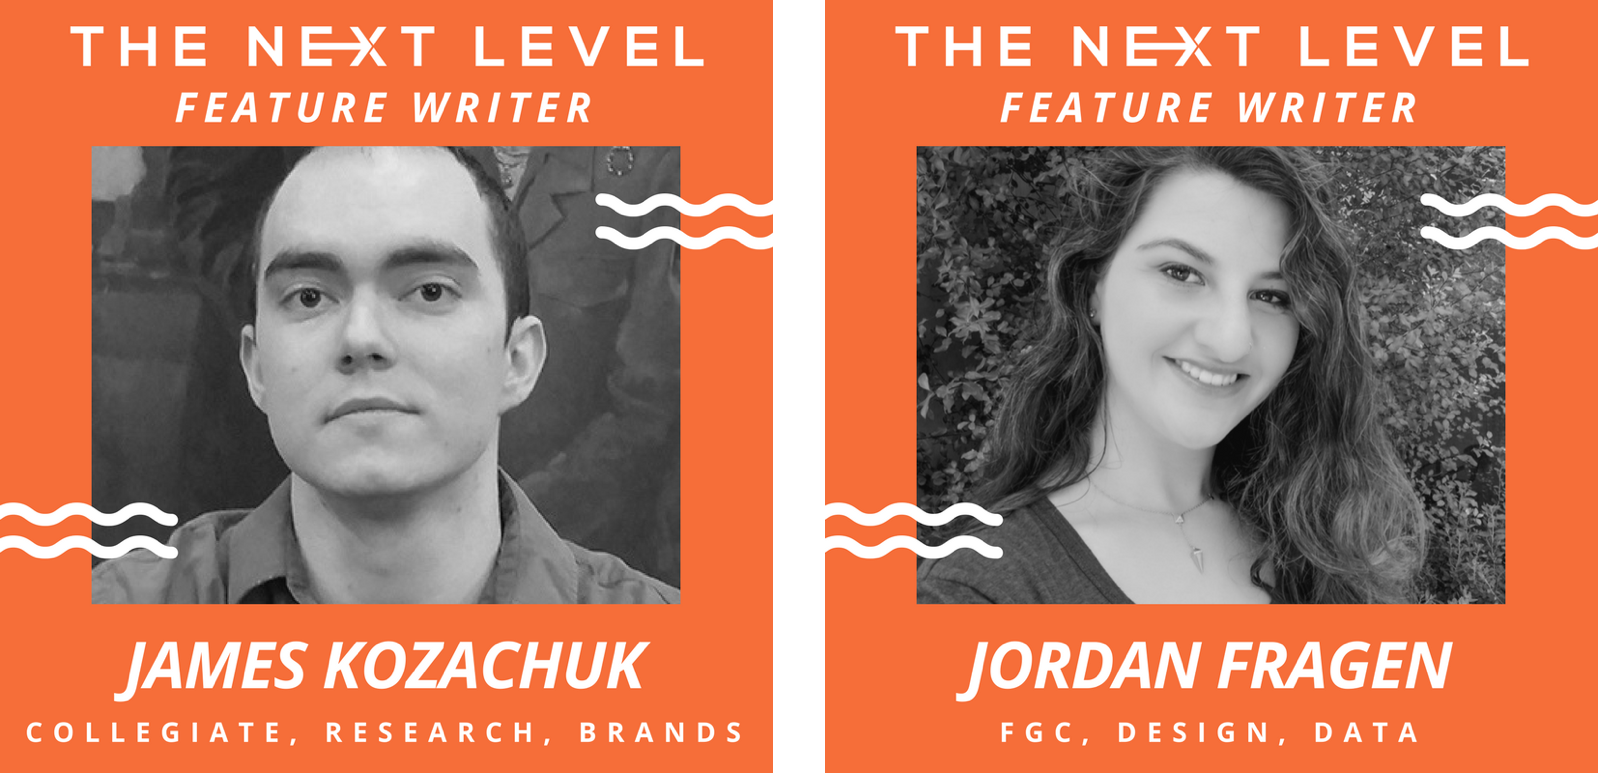 The Next Level's New Feature Writers (Photo: The Next Level)